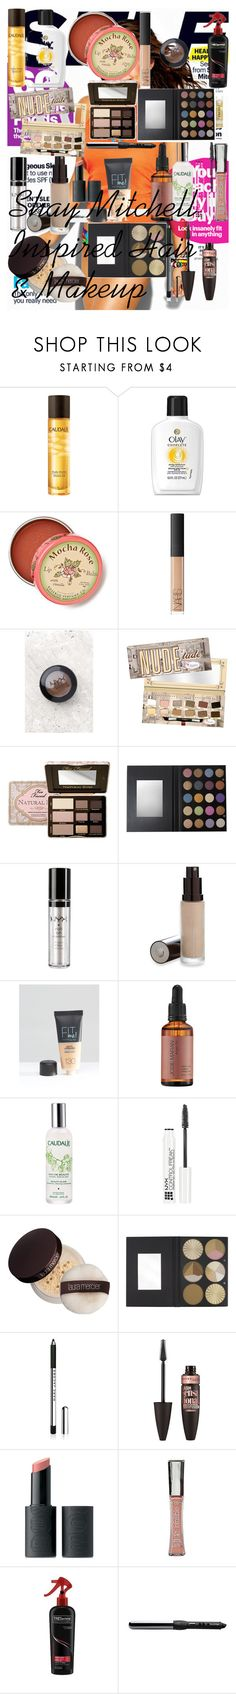 """""""Shay Mitchell Inspired Hair & Makeup"""" by oroartye-1 on Polyvore featuring beauty, Caudalíe, Olay, Anthropologie, NARS Cosmetics, NYX, TheBalm, Too Faced Cosmetics, Maybelline and Josie Maran"""